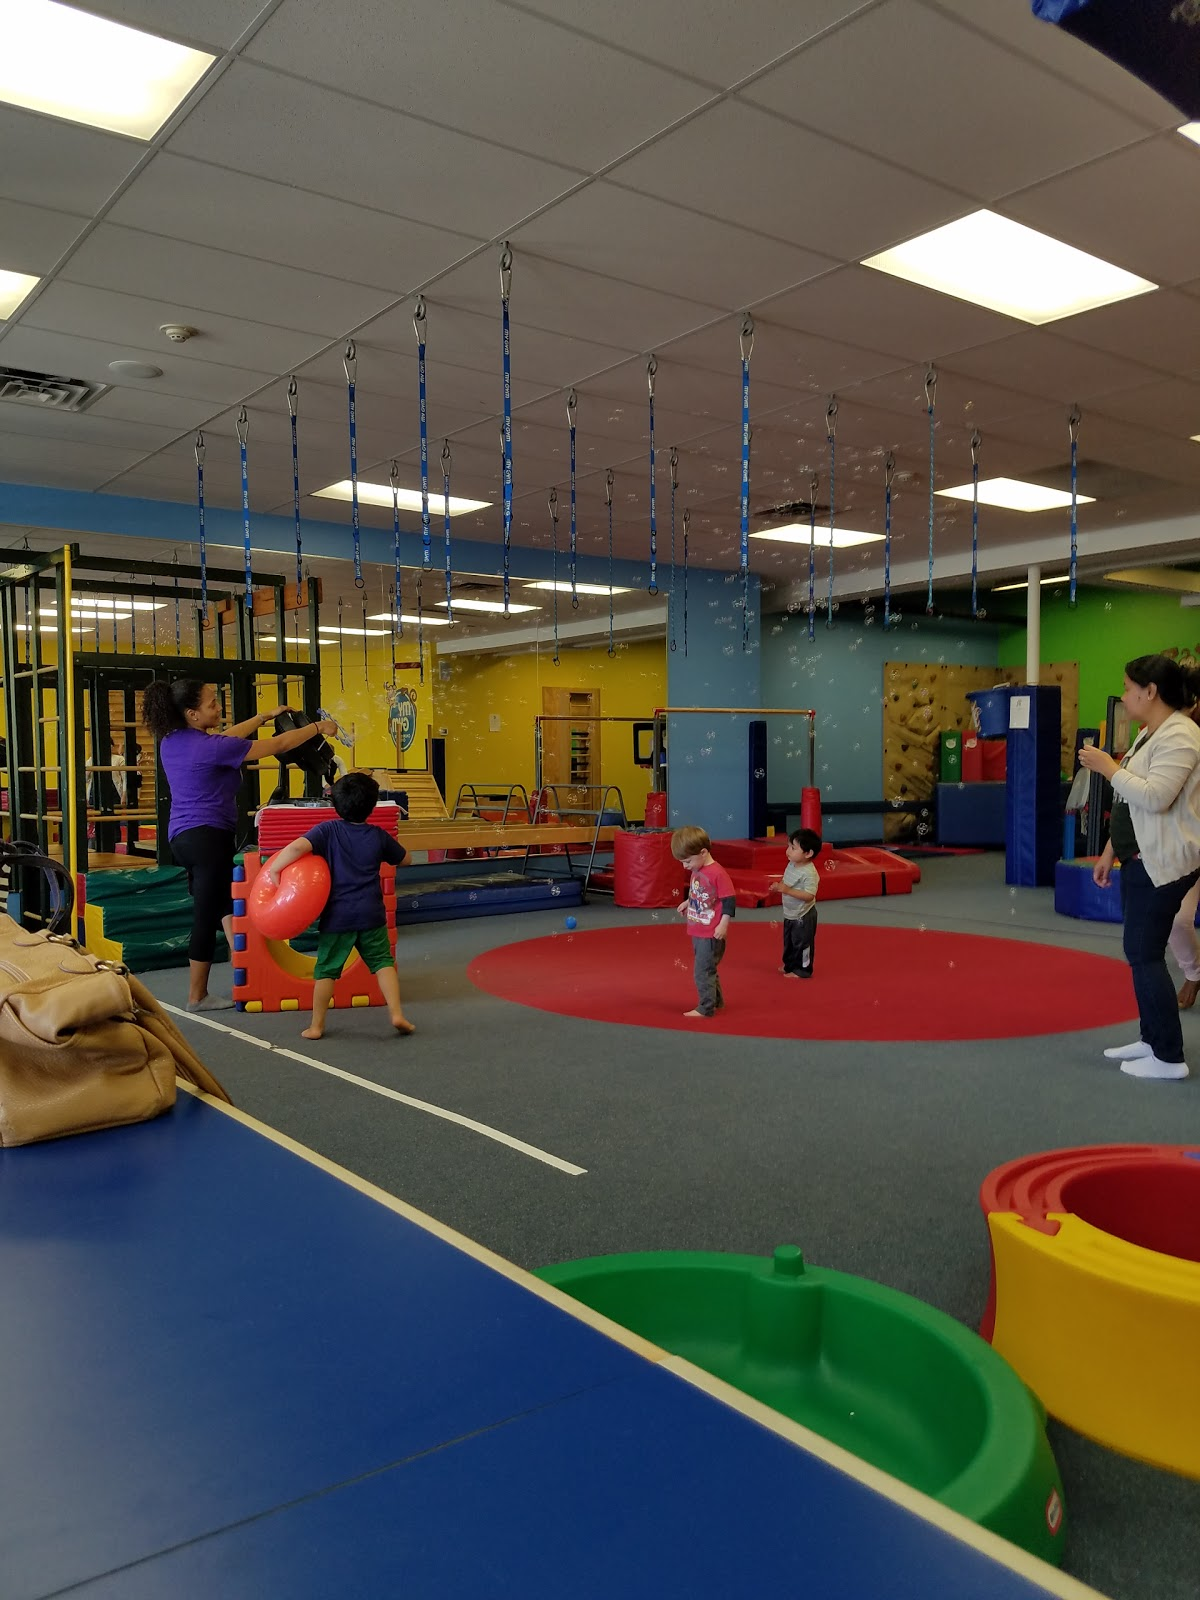 My Gym Children's Fitness Center of Larchmont - photo